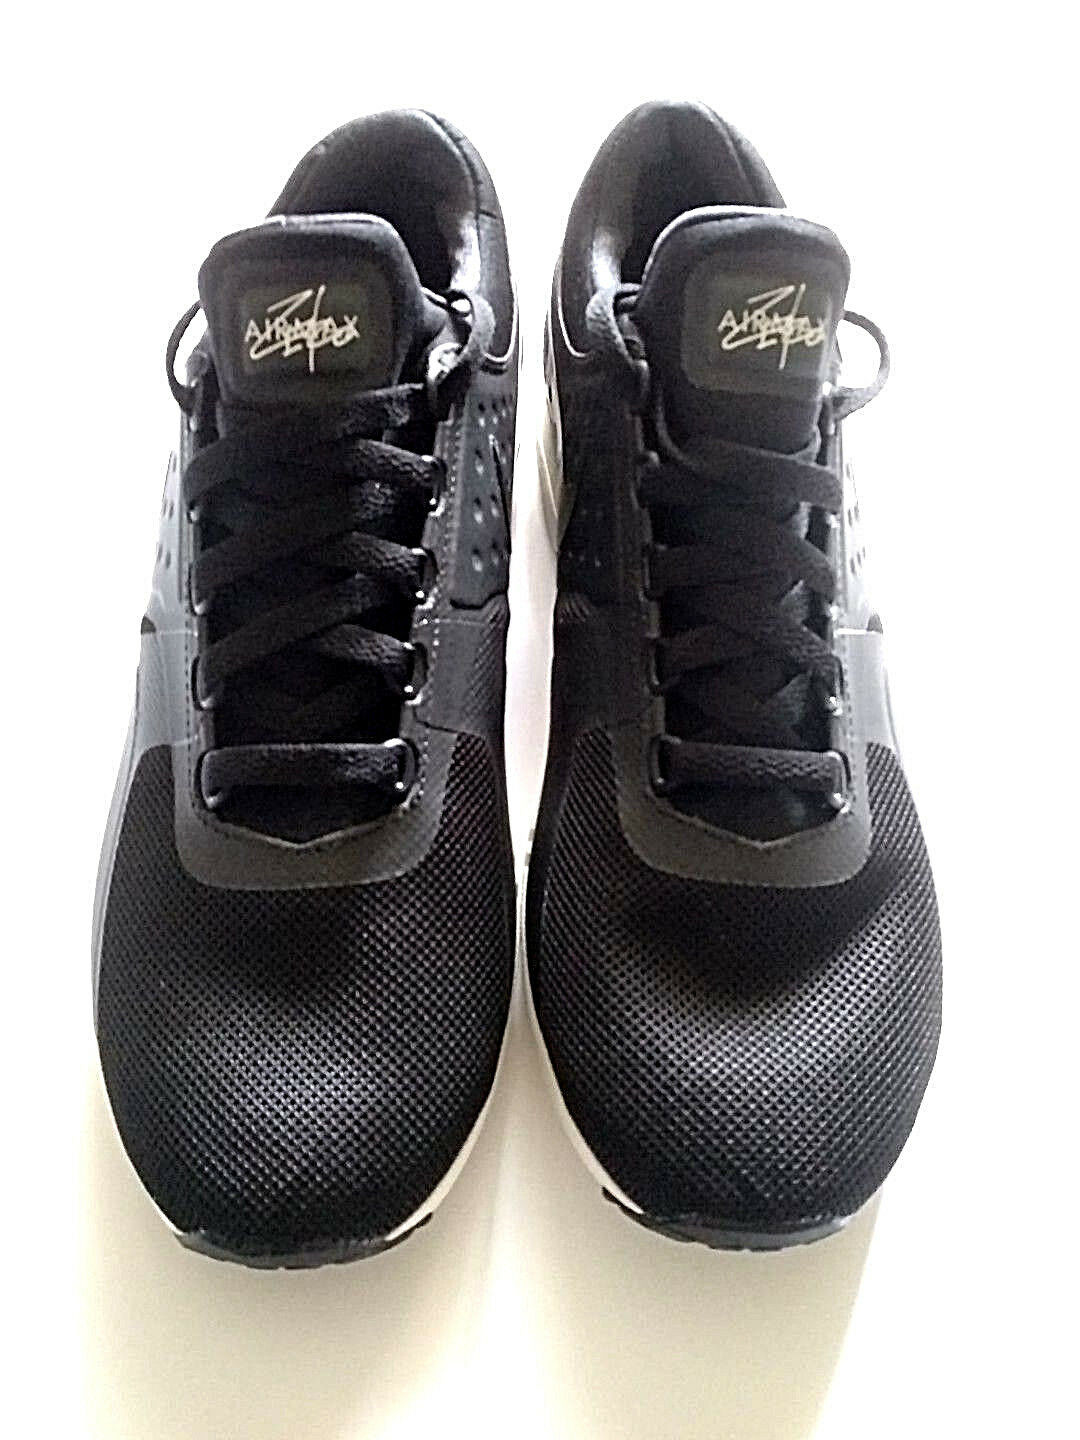 3e0513104afa ... Nike Women s Air Max Zero Black Running Sneackers Sneackers Sneackers  shoes Sz 12 ff7535